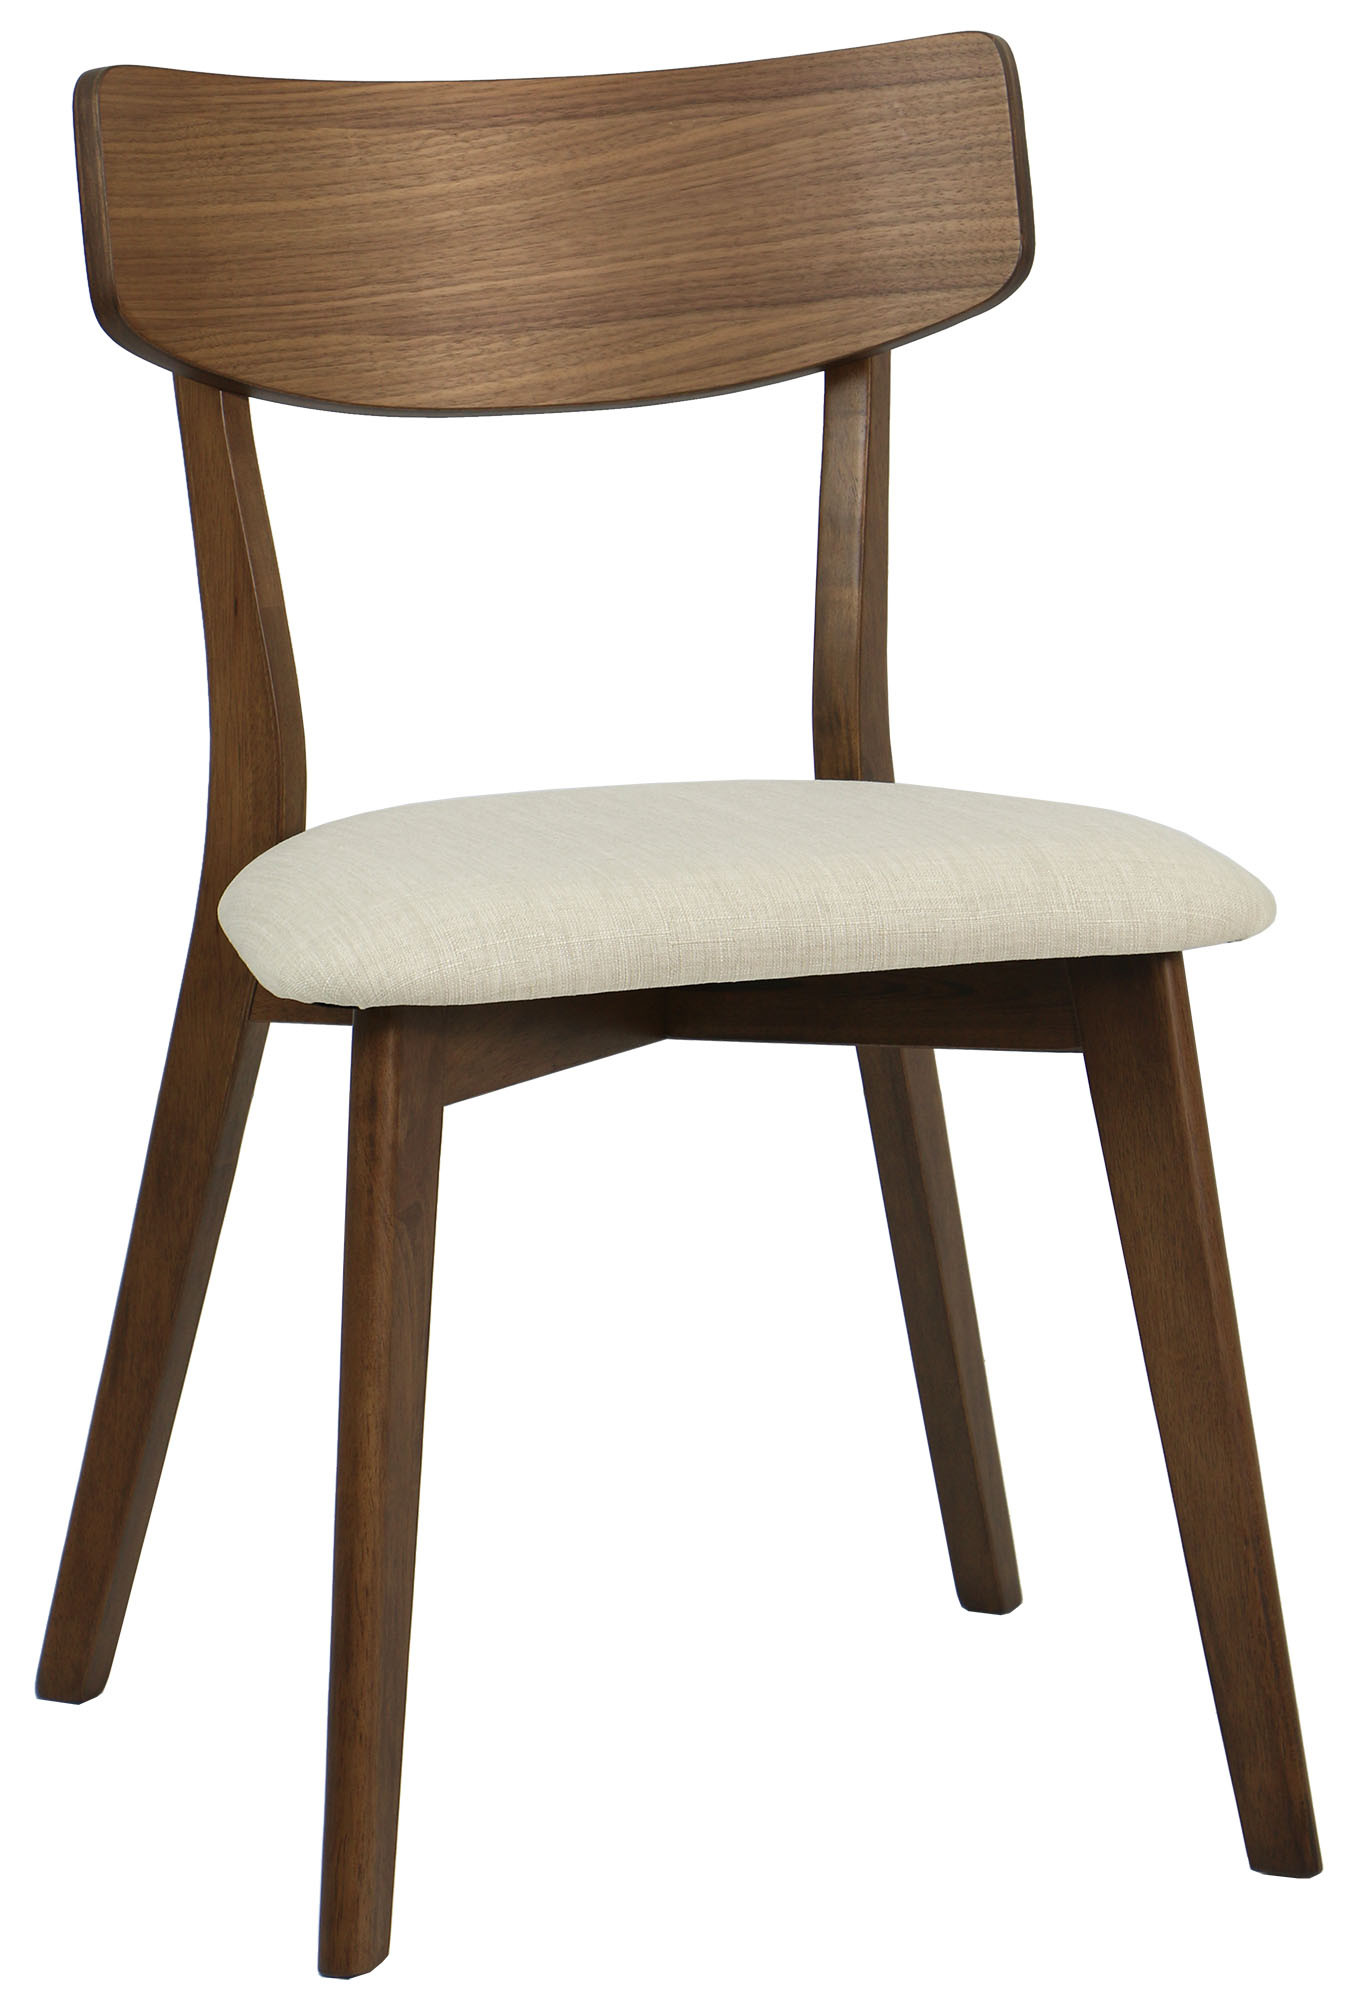 Chair Price Deluxe Dining Chair Walnut